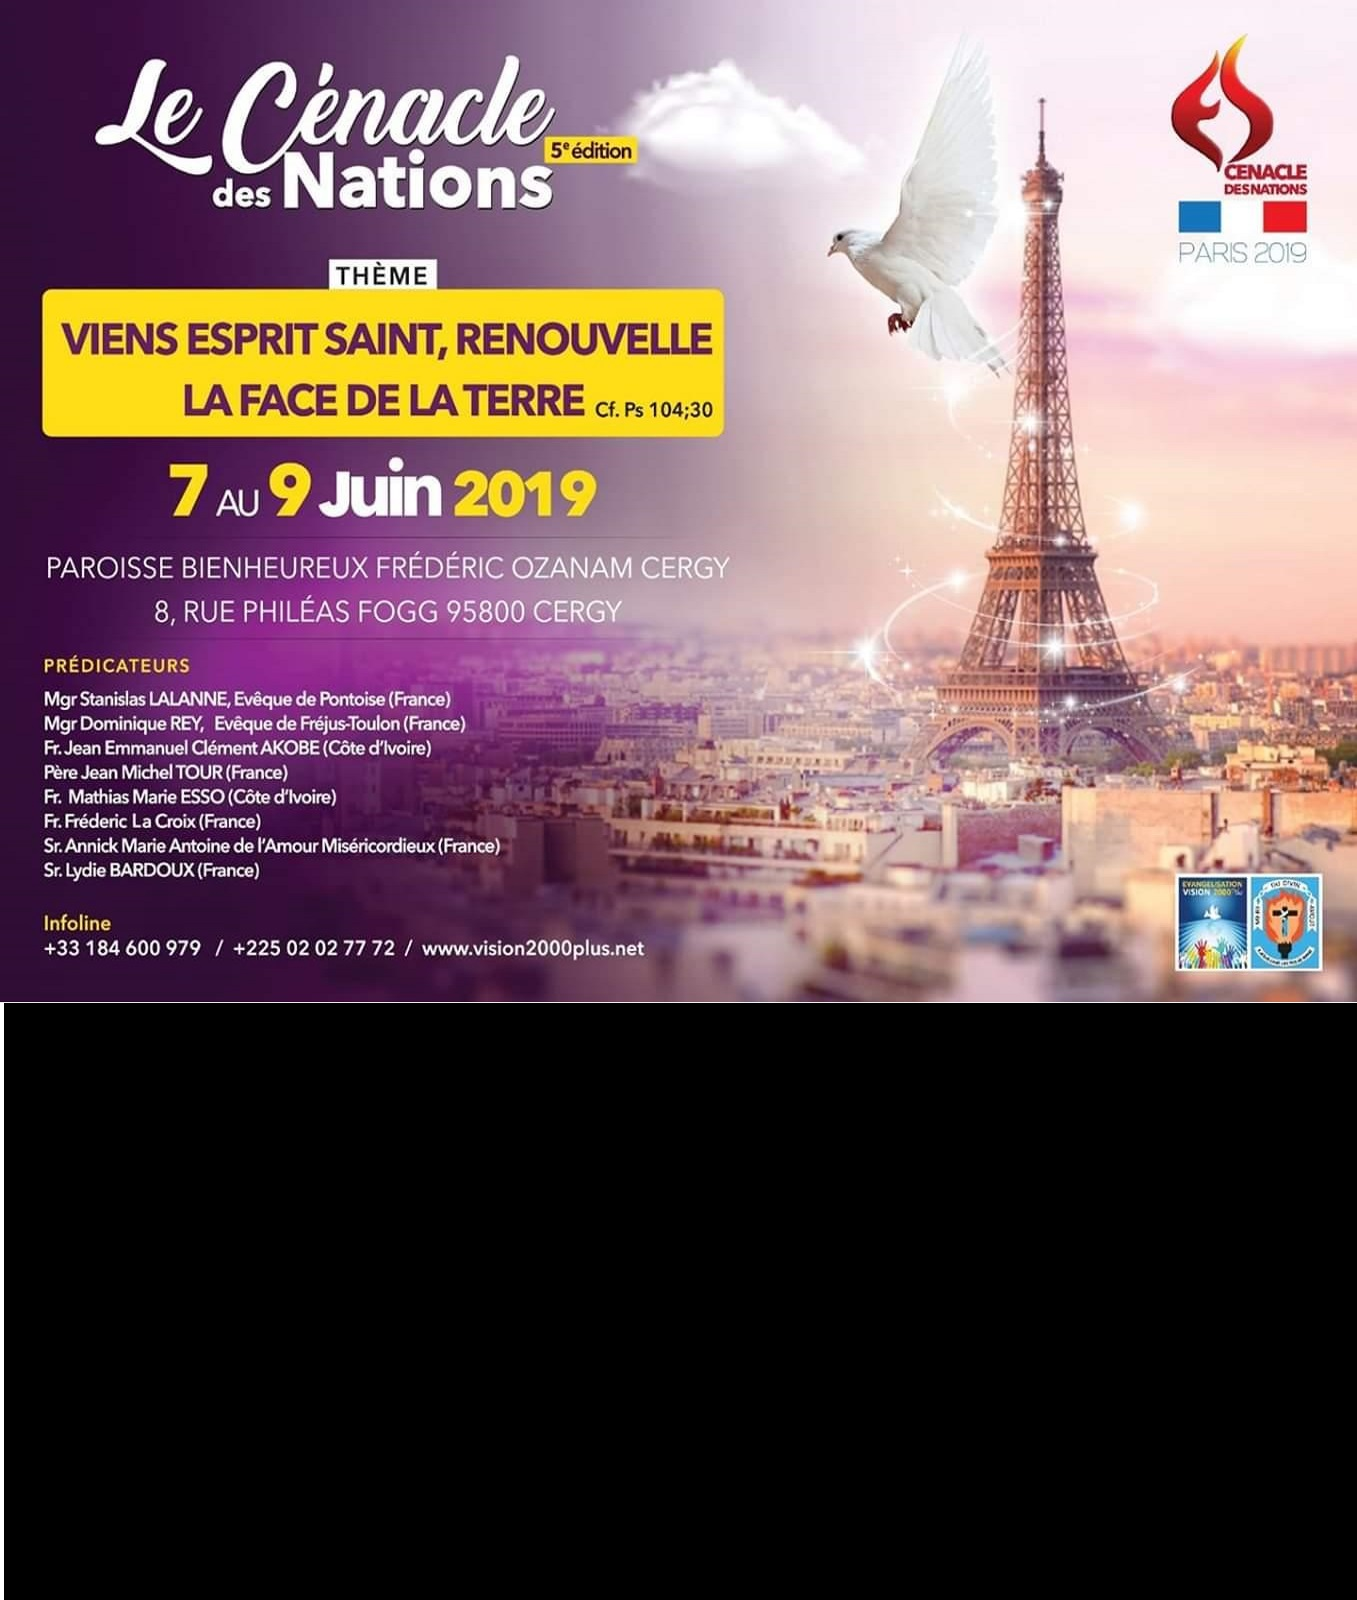 Cénacle des Nations 2019